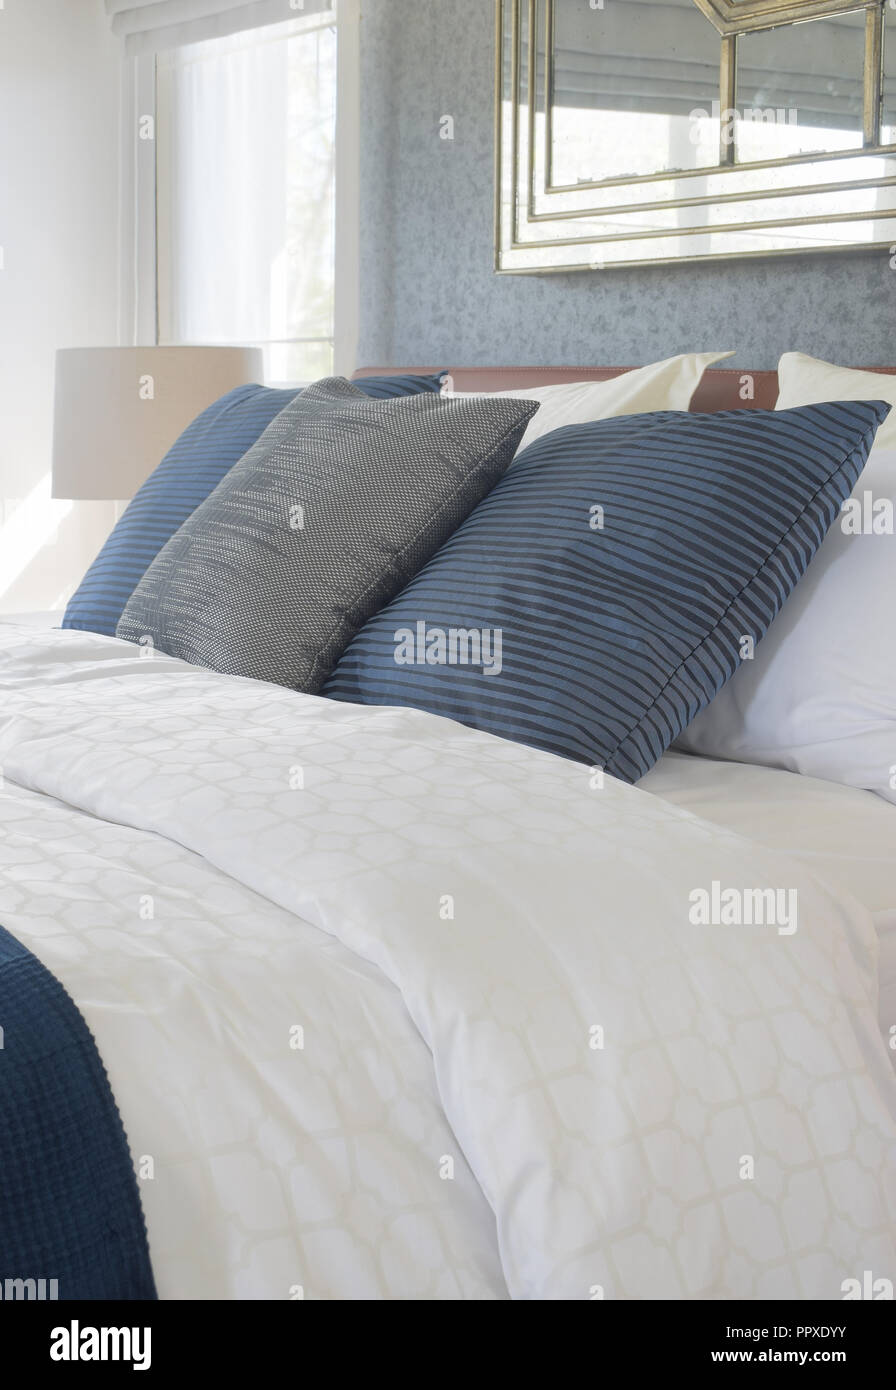 Dark color scheme pillows on bed with comfy bedding - Stock Image